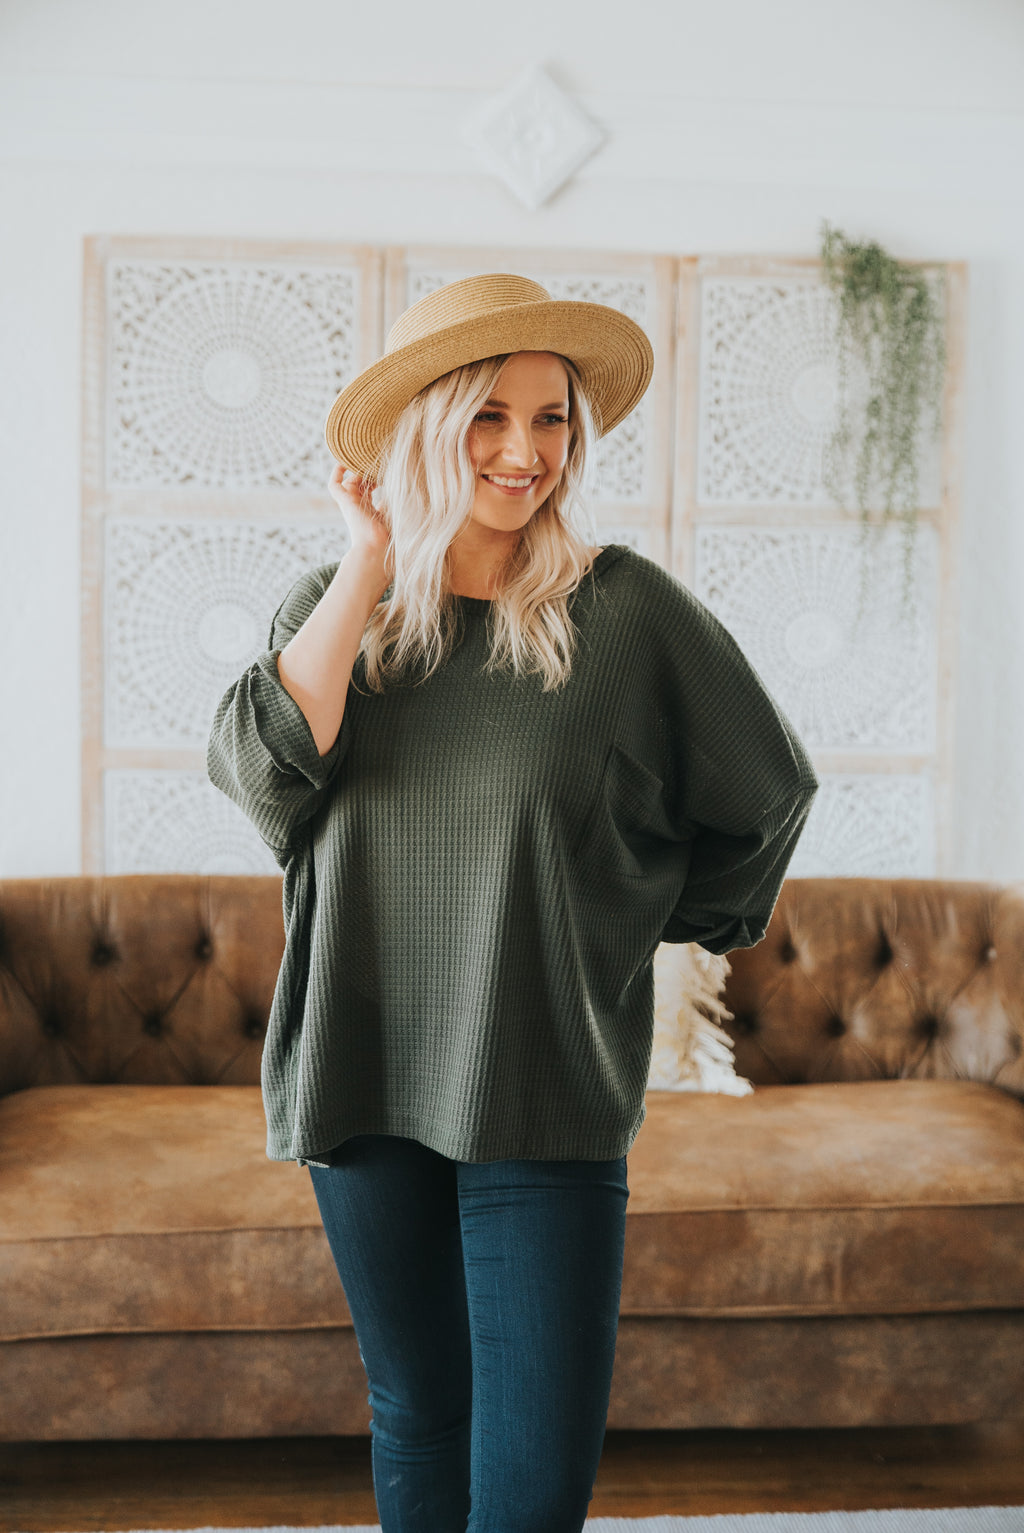 The Bijou Waffle Knit Top in Olive (Sizes S-2X)